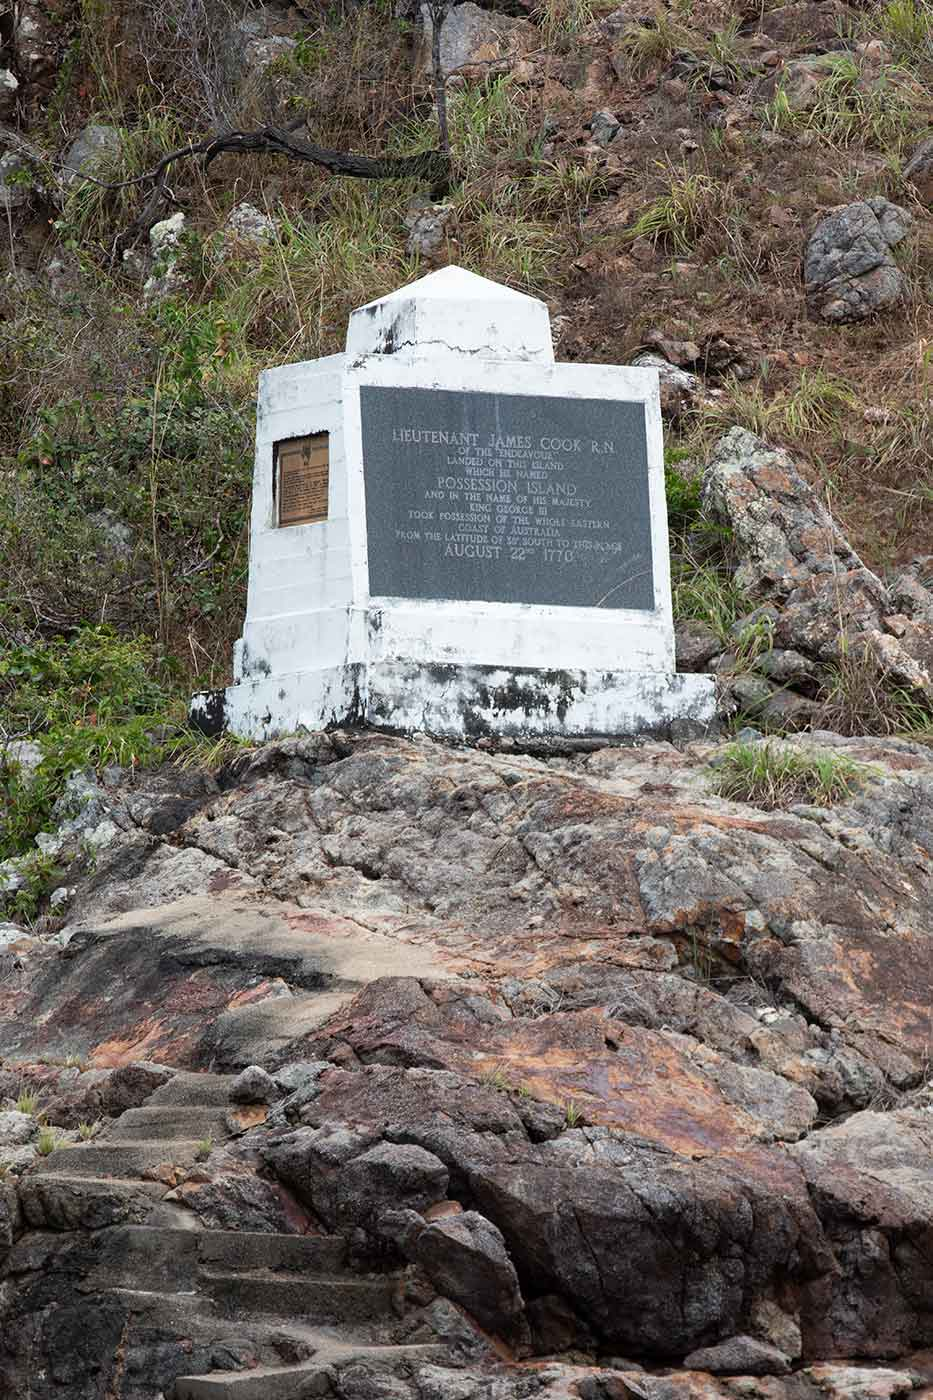 White concrete monument positioned on a rock with a plaque commemorated to Lieutenant James Cook. - click to view larger image